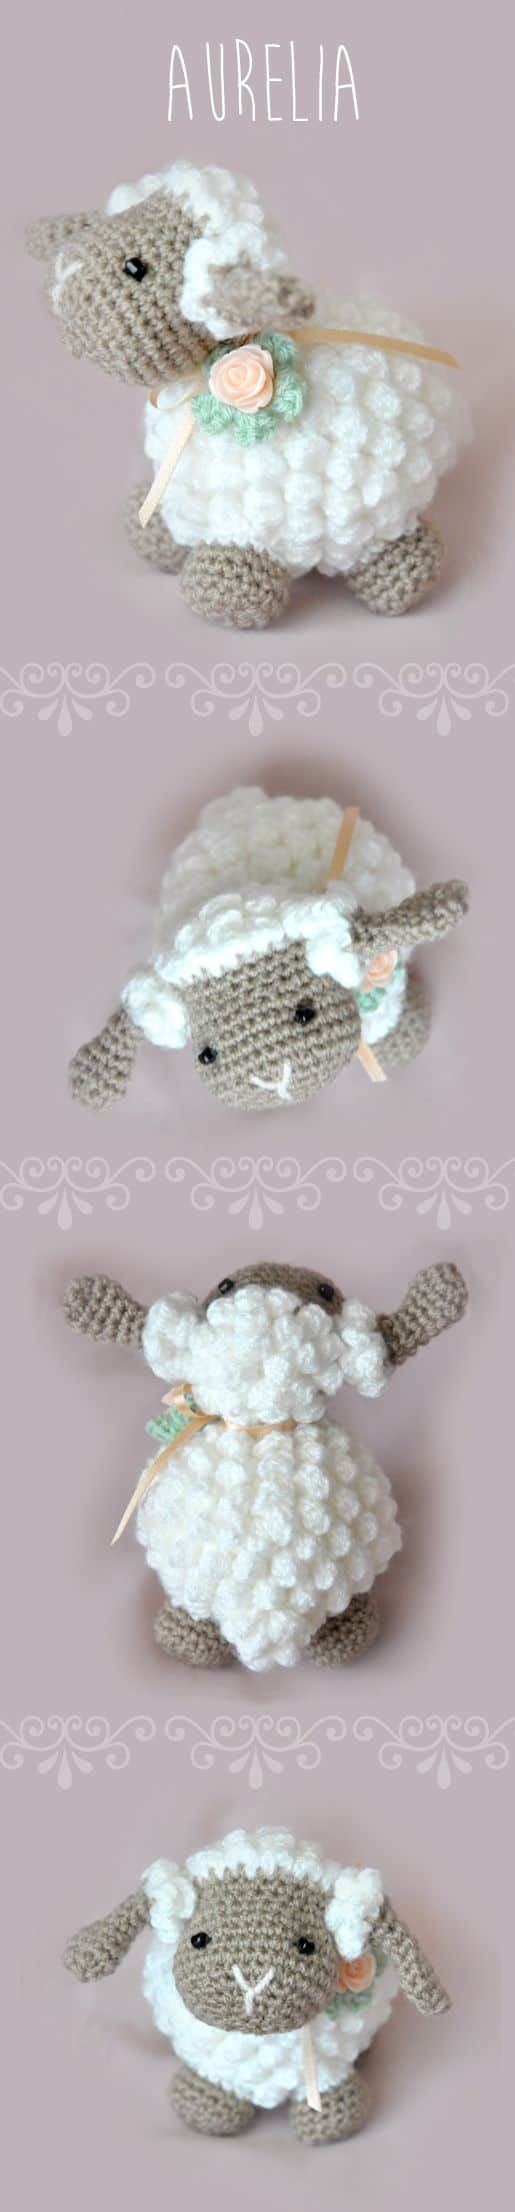 Crochet Bobble Sheep Pillow And Lots Of Free Patterns | Animales de ...